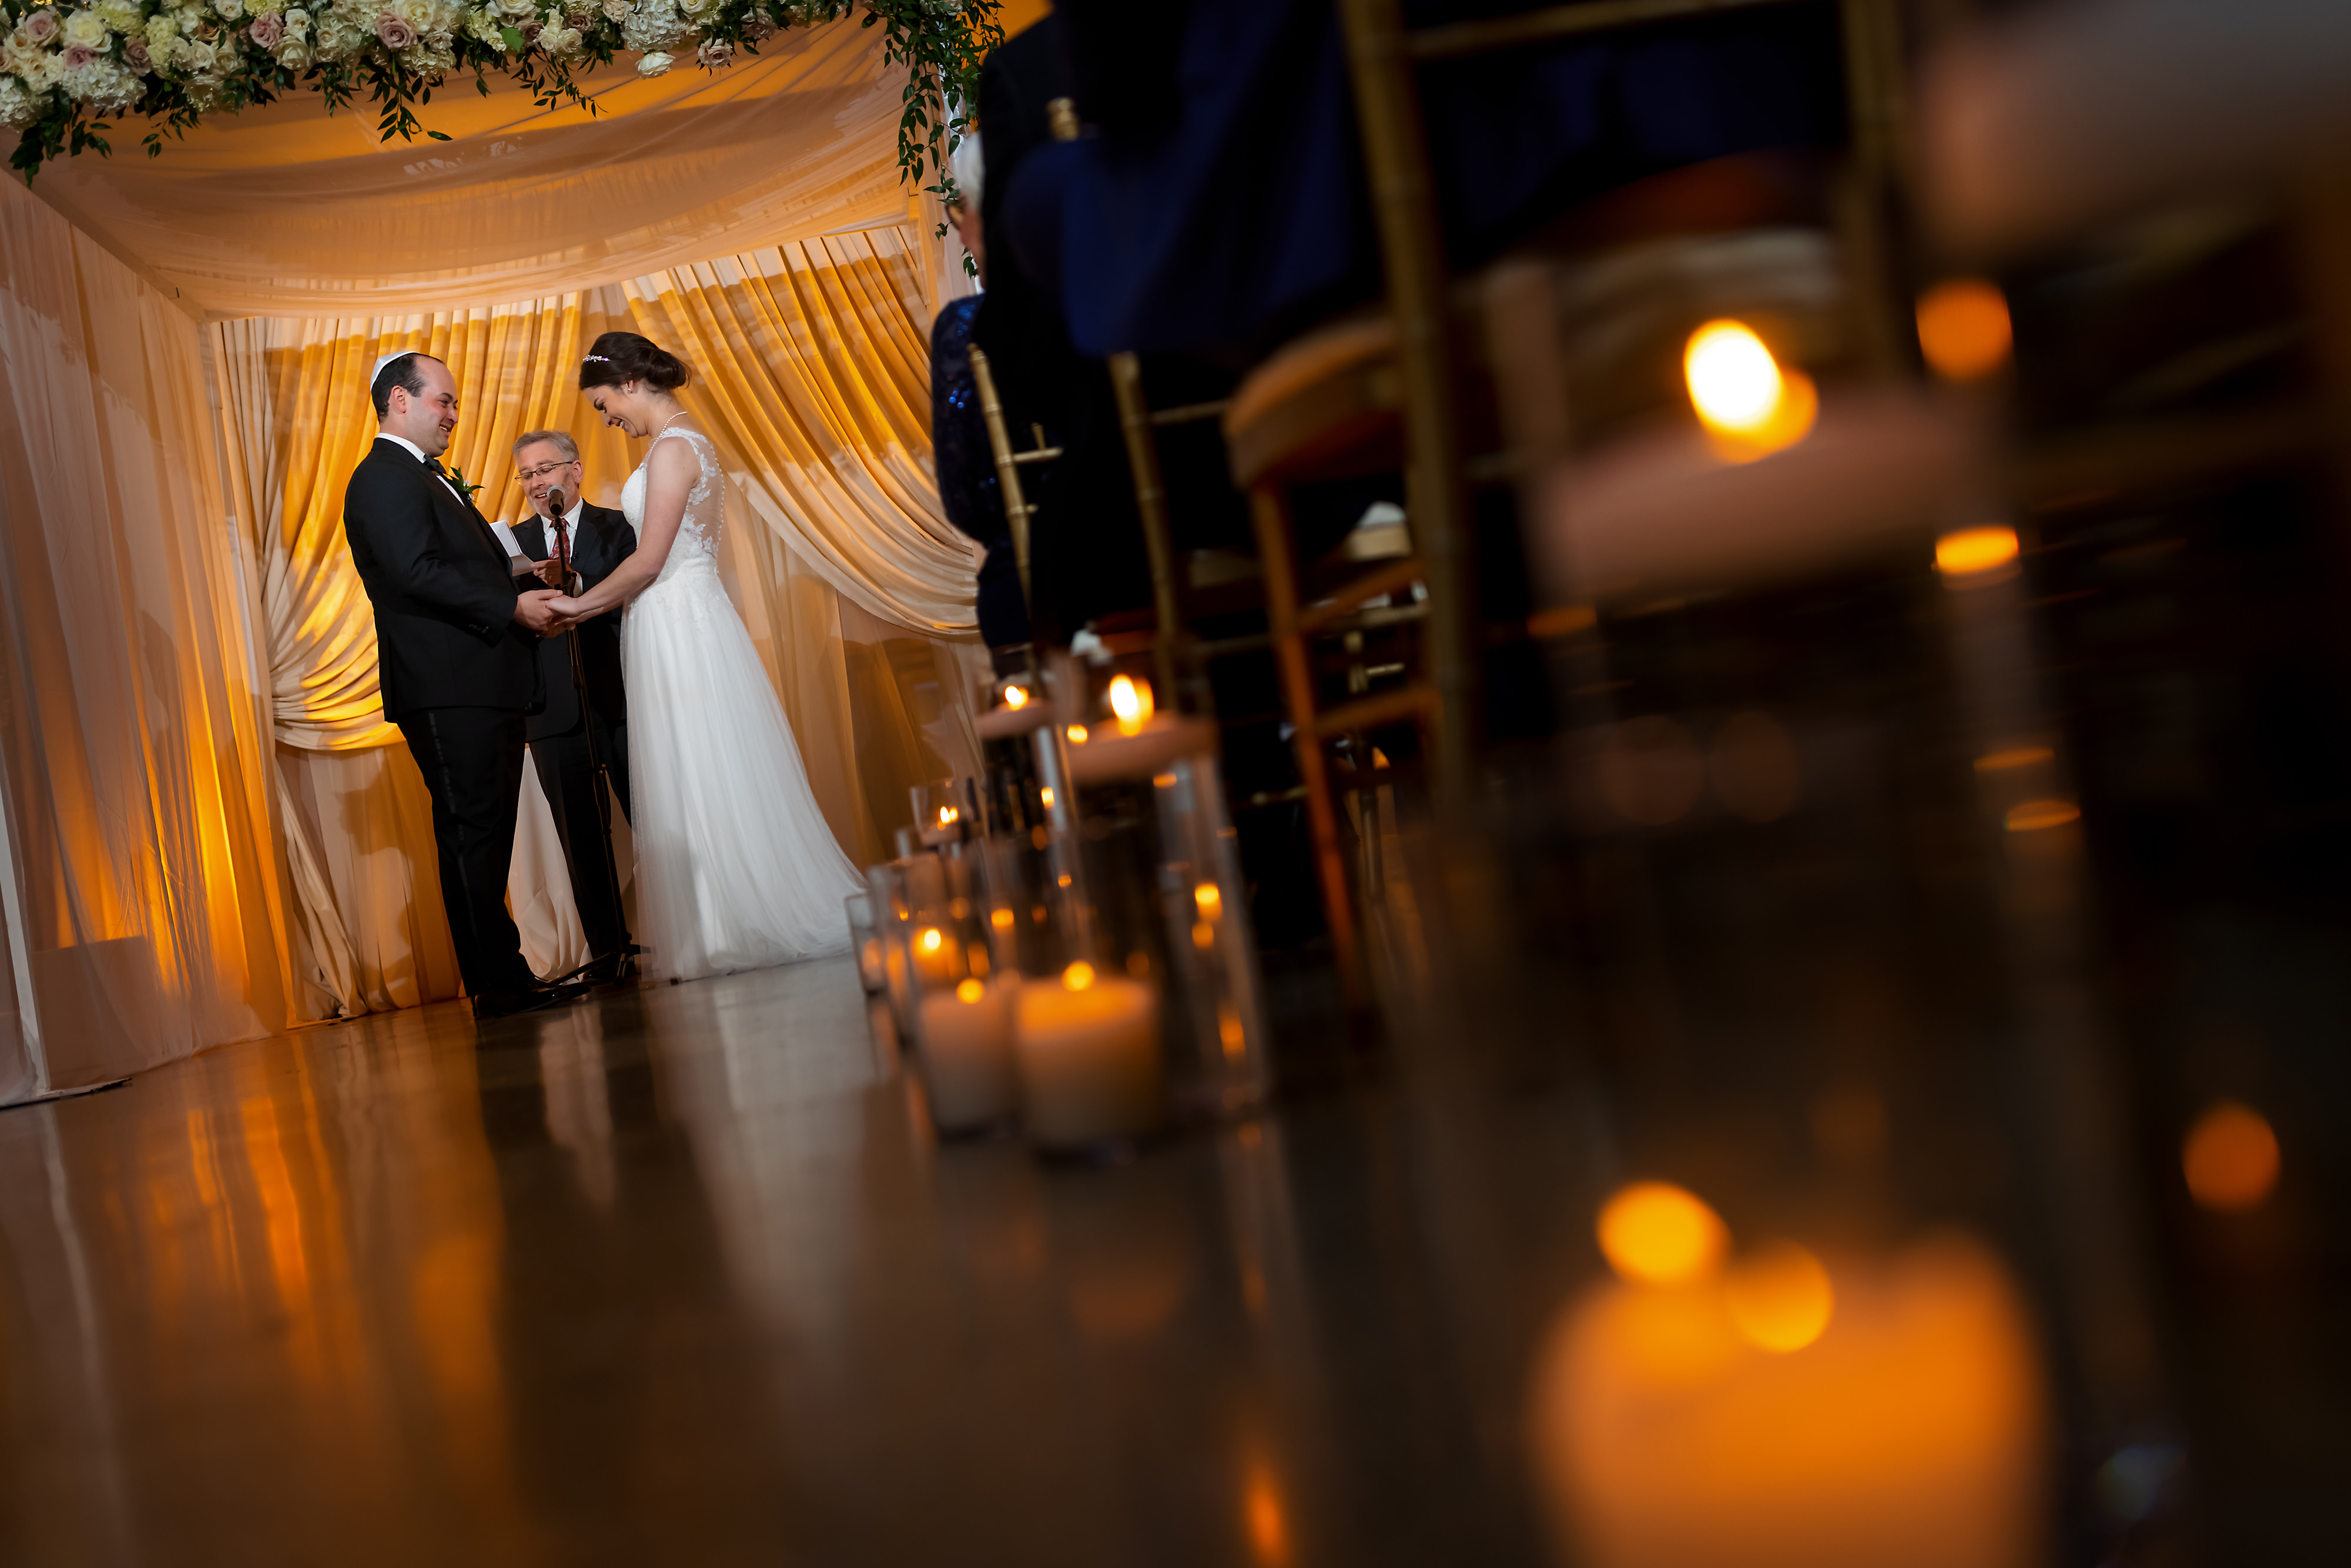 Bride and groom smile during wedding ceremony at the Rookery Building in Chicago